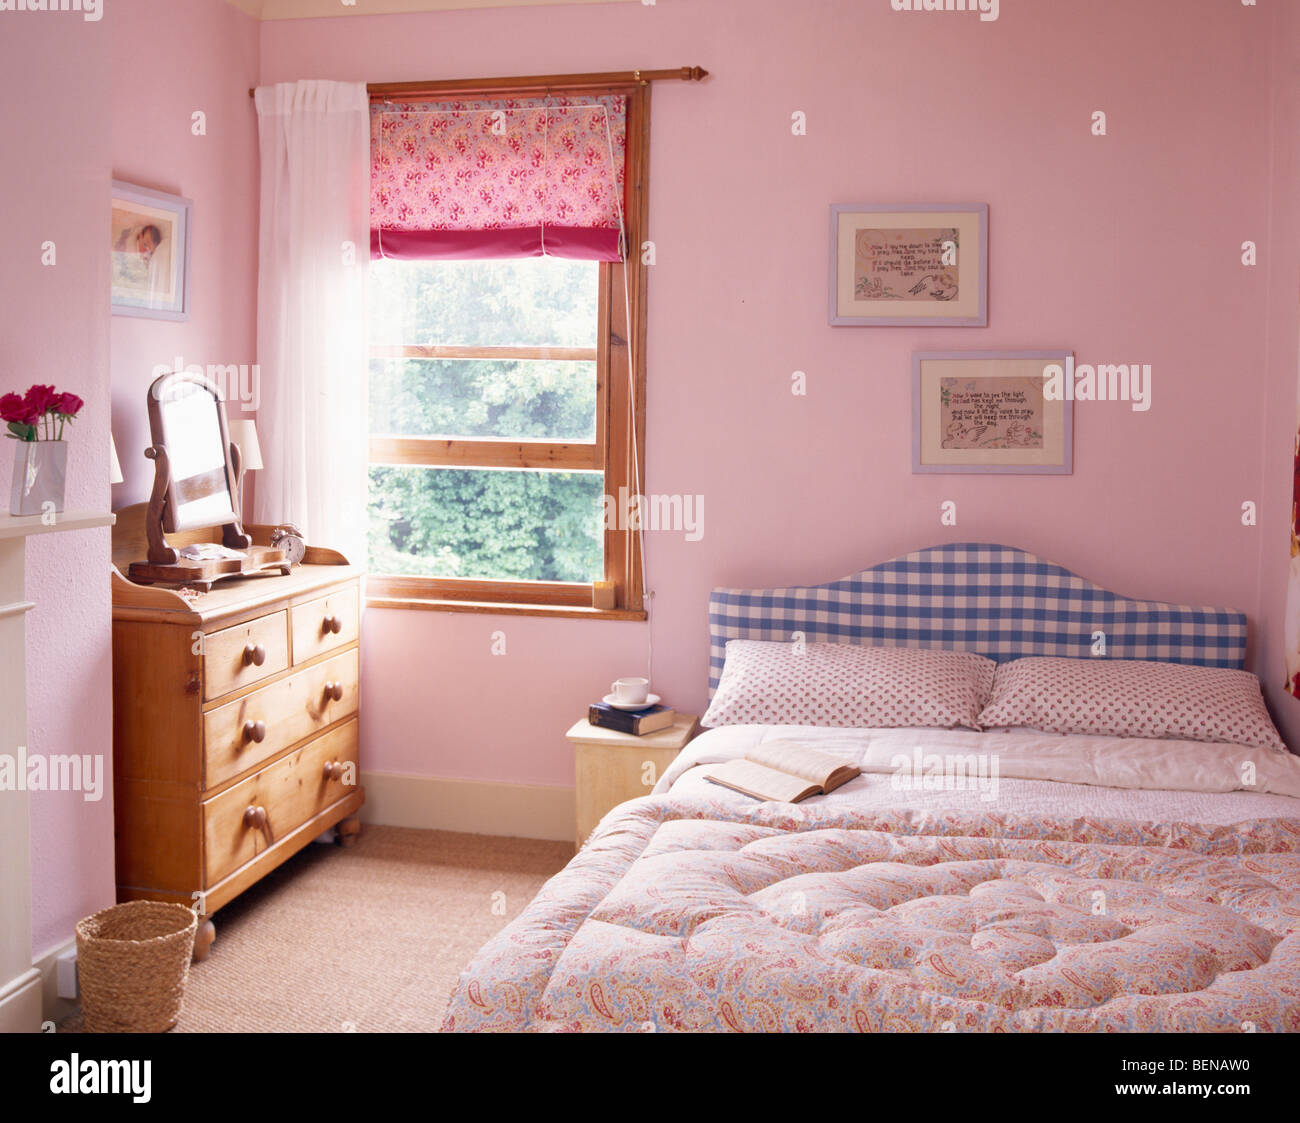 Pink Blind And White Curtain On Window In Pastel Country Bedroom With Eiderdown Bed Blue Checked Headboard